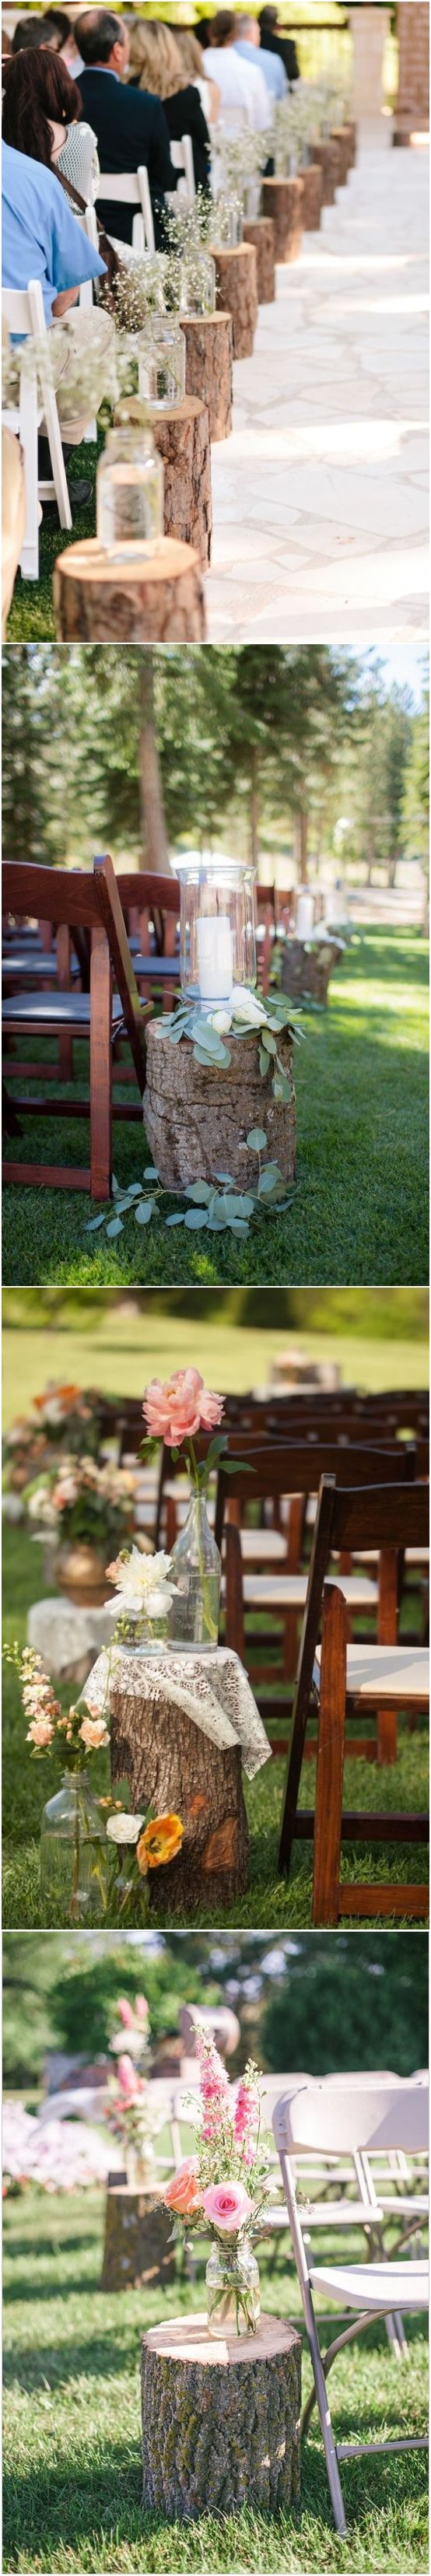 Wedding decoration ideas 2018  Rustic Woodsy Wedding Trend   Tree Stump  Rustic country